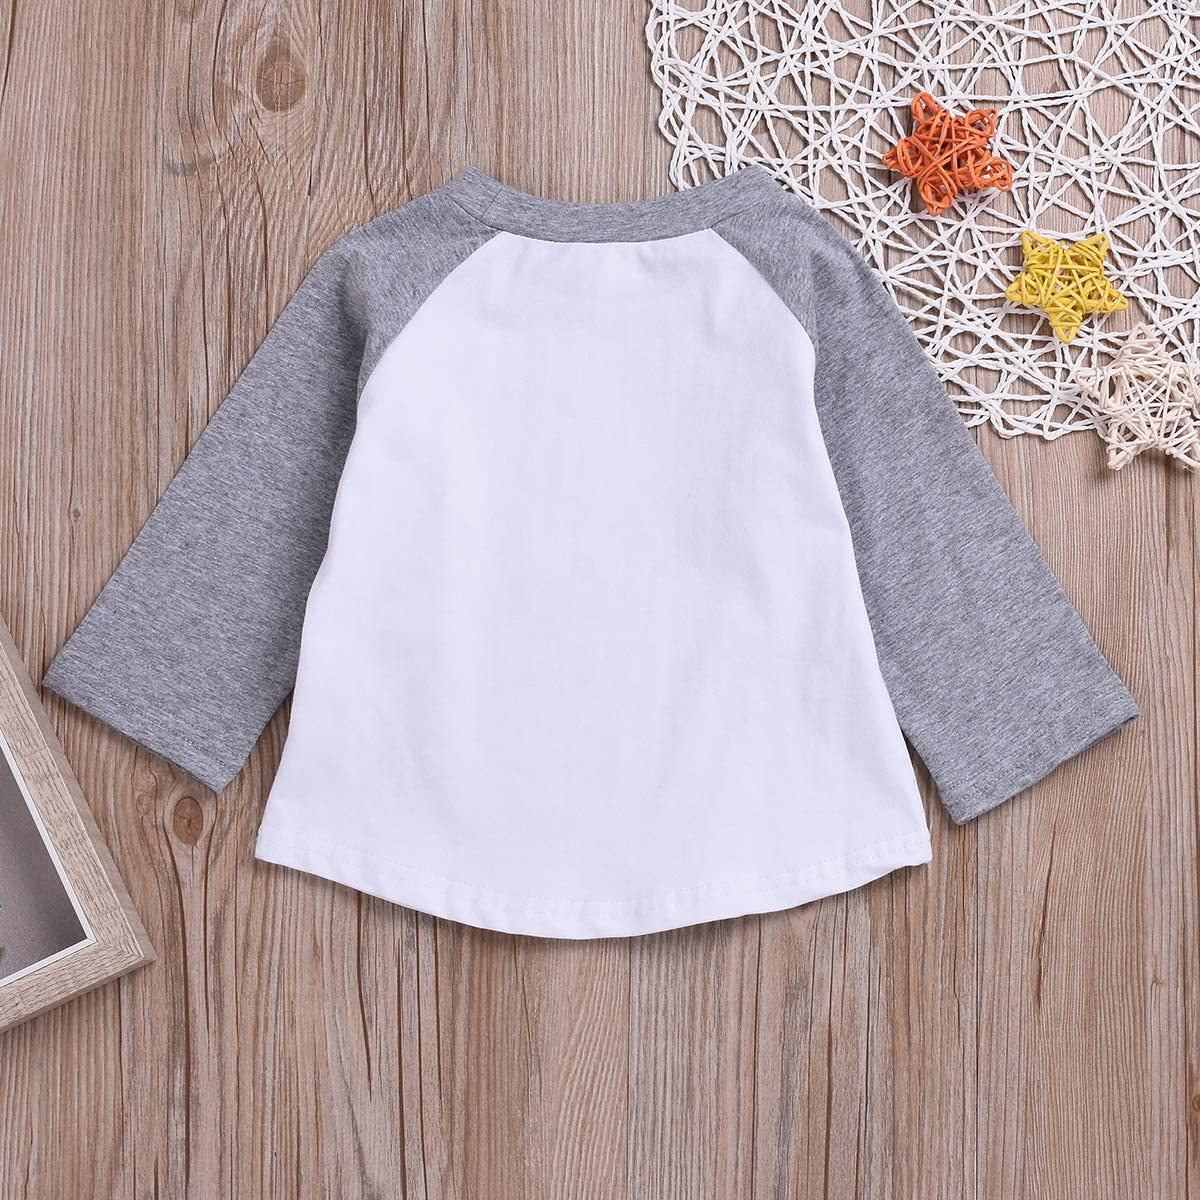 T-Shirts for Toddler Boys Girls Cool Like My Aunt Long Sleeve Simple T-Shirt Tees /& Top